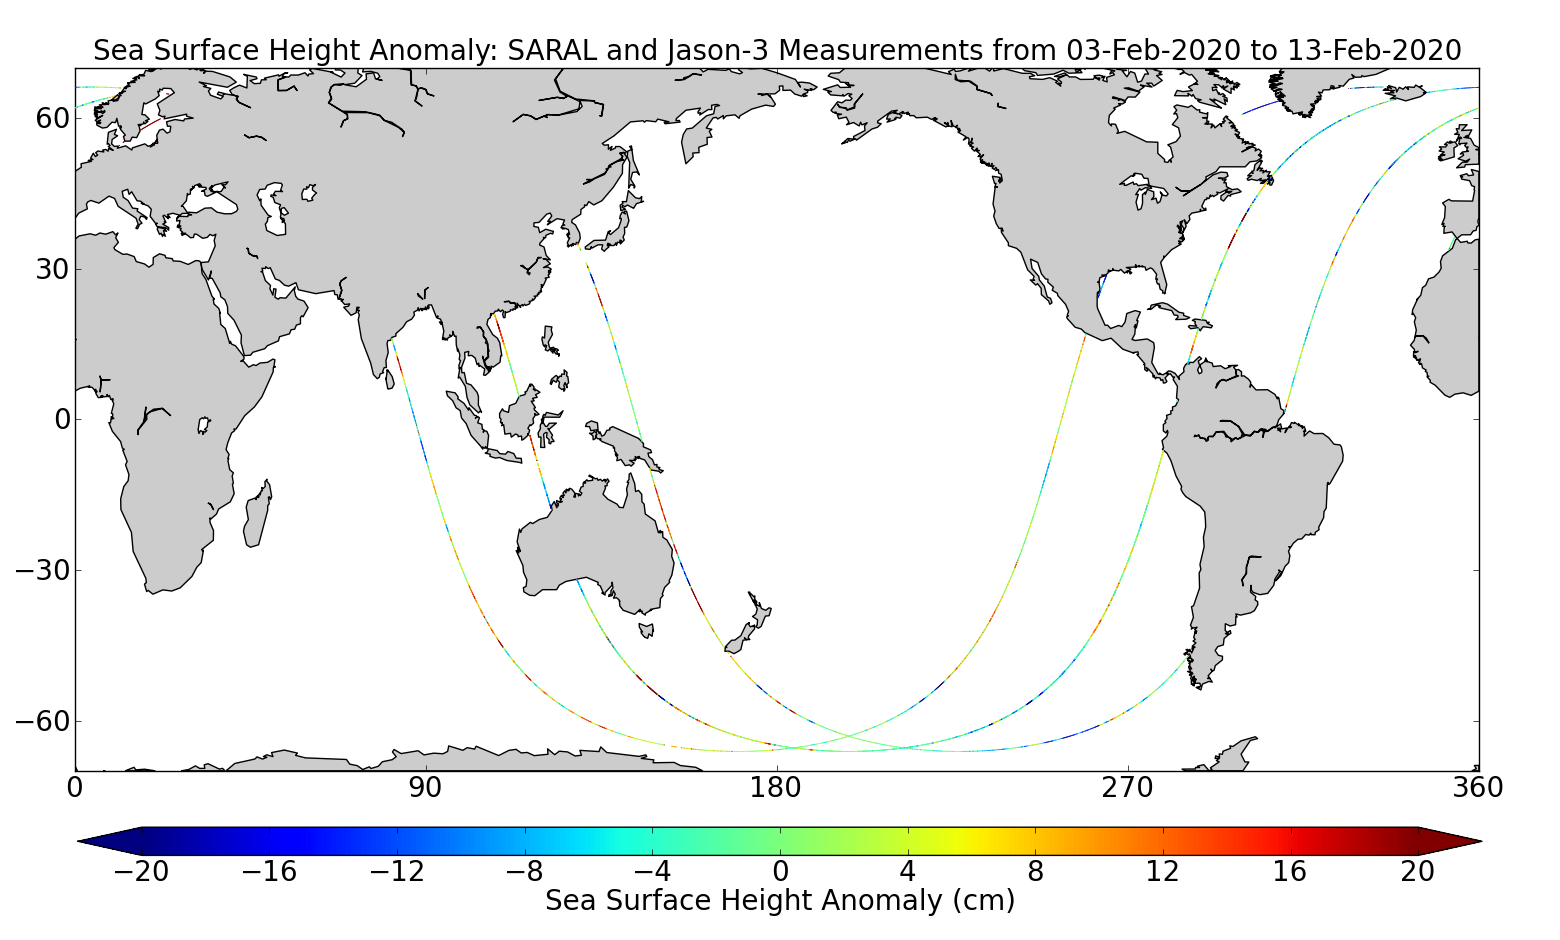 Sea Surface Height Anomaly: SARAL and Jason-3 Measurements from 03-Feb-2020 to 13-Feb-2020